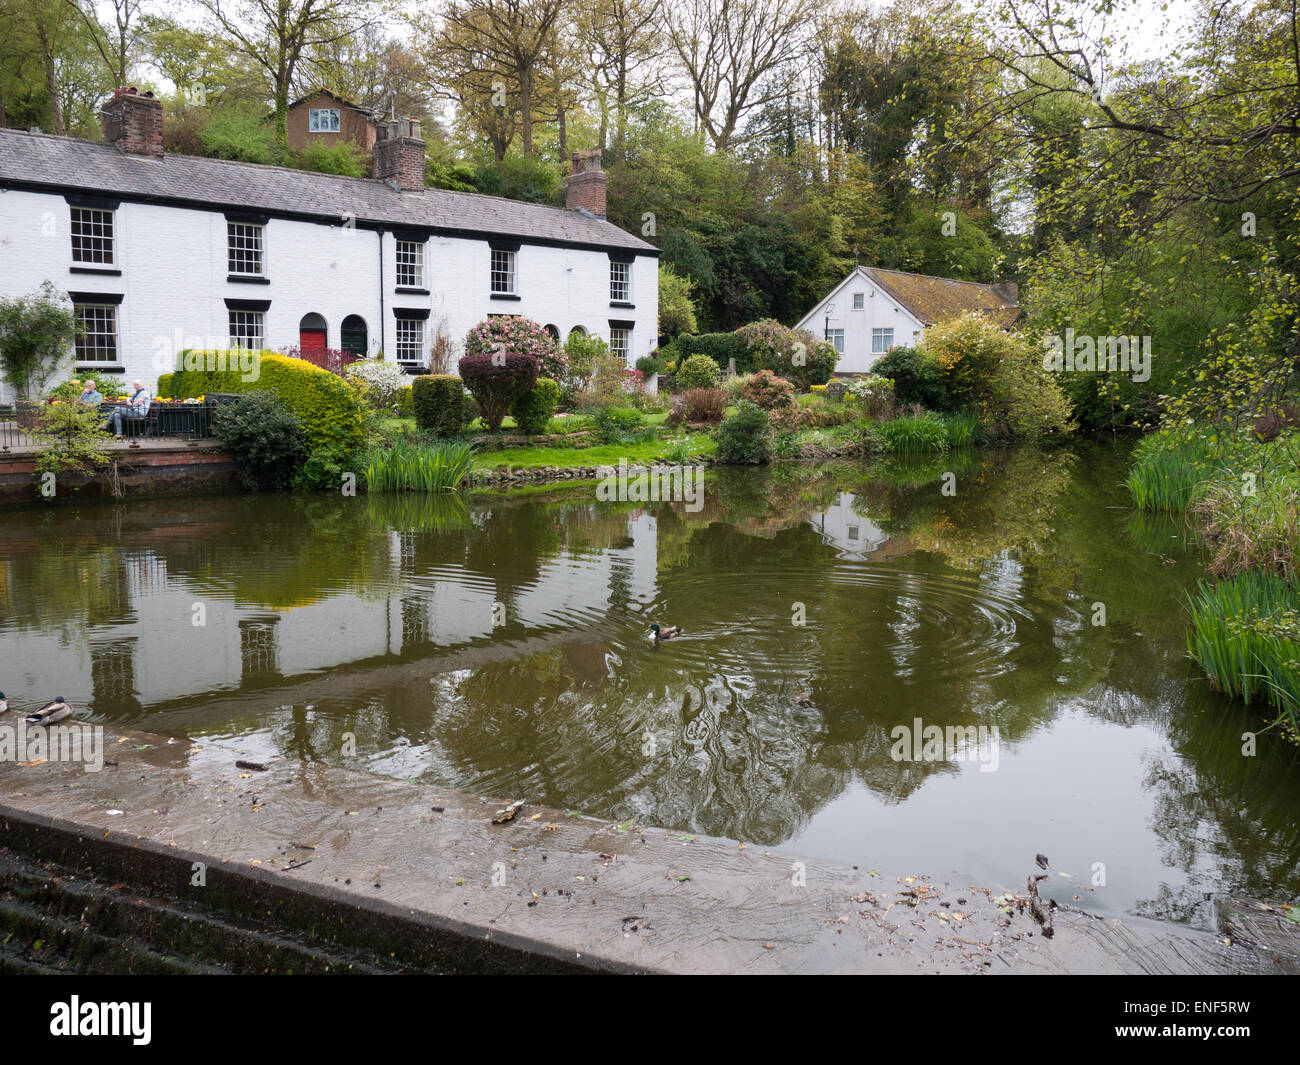 White cottages by a pool in Lymm village, Cheshire, UK - Stock Image